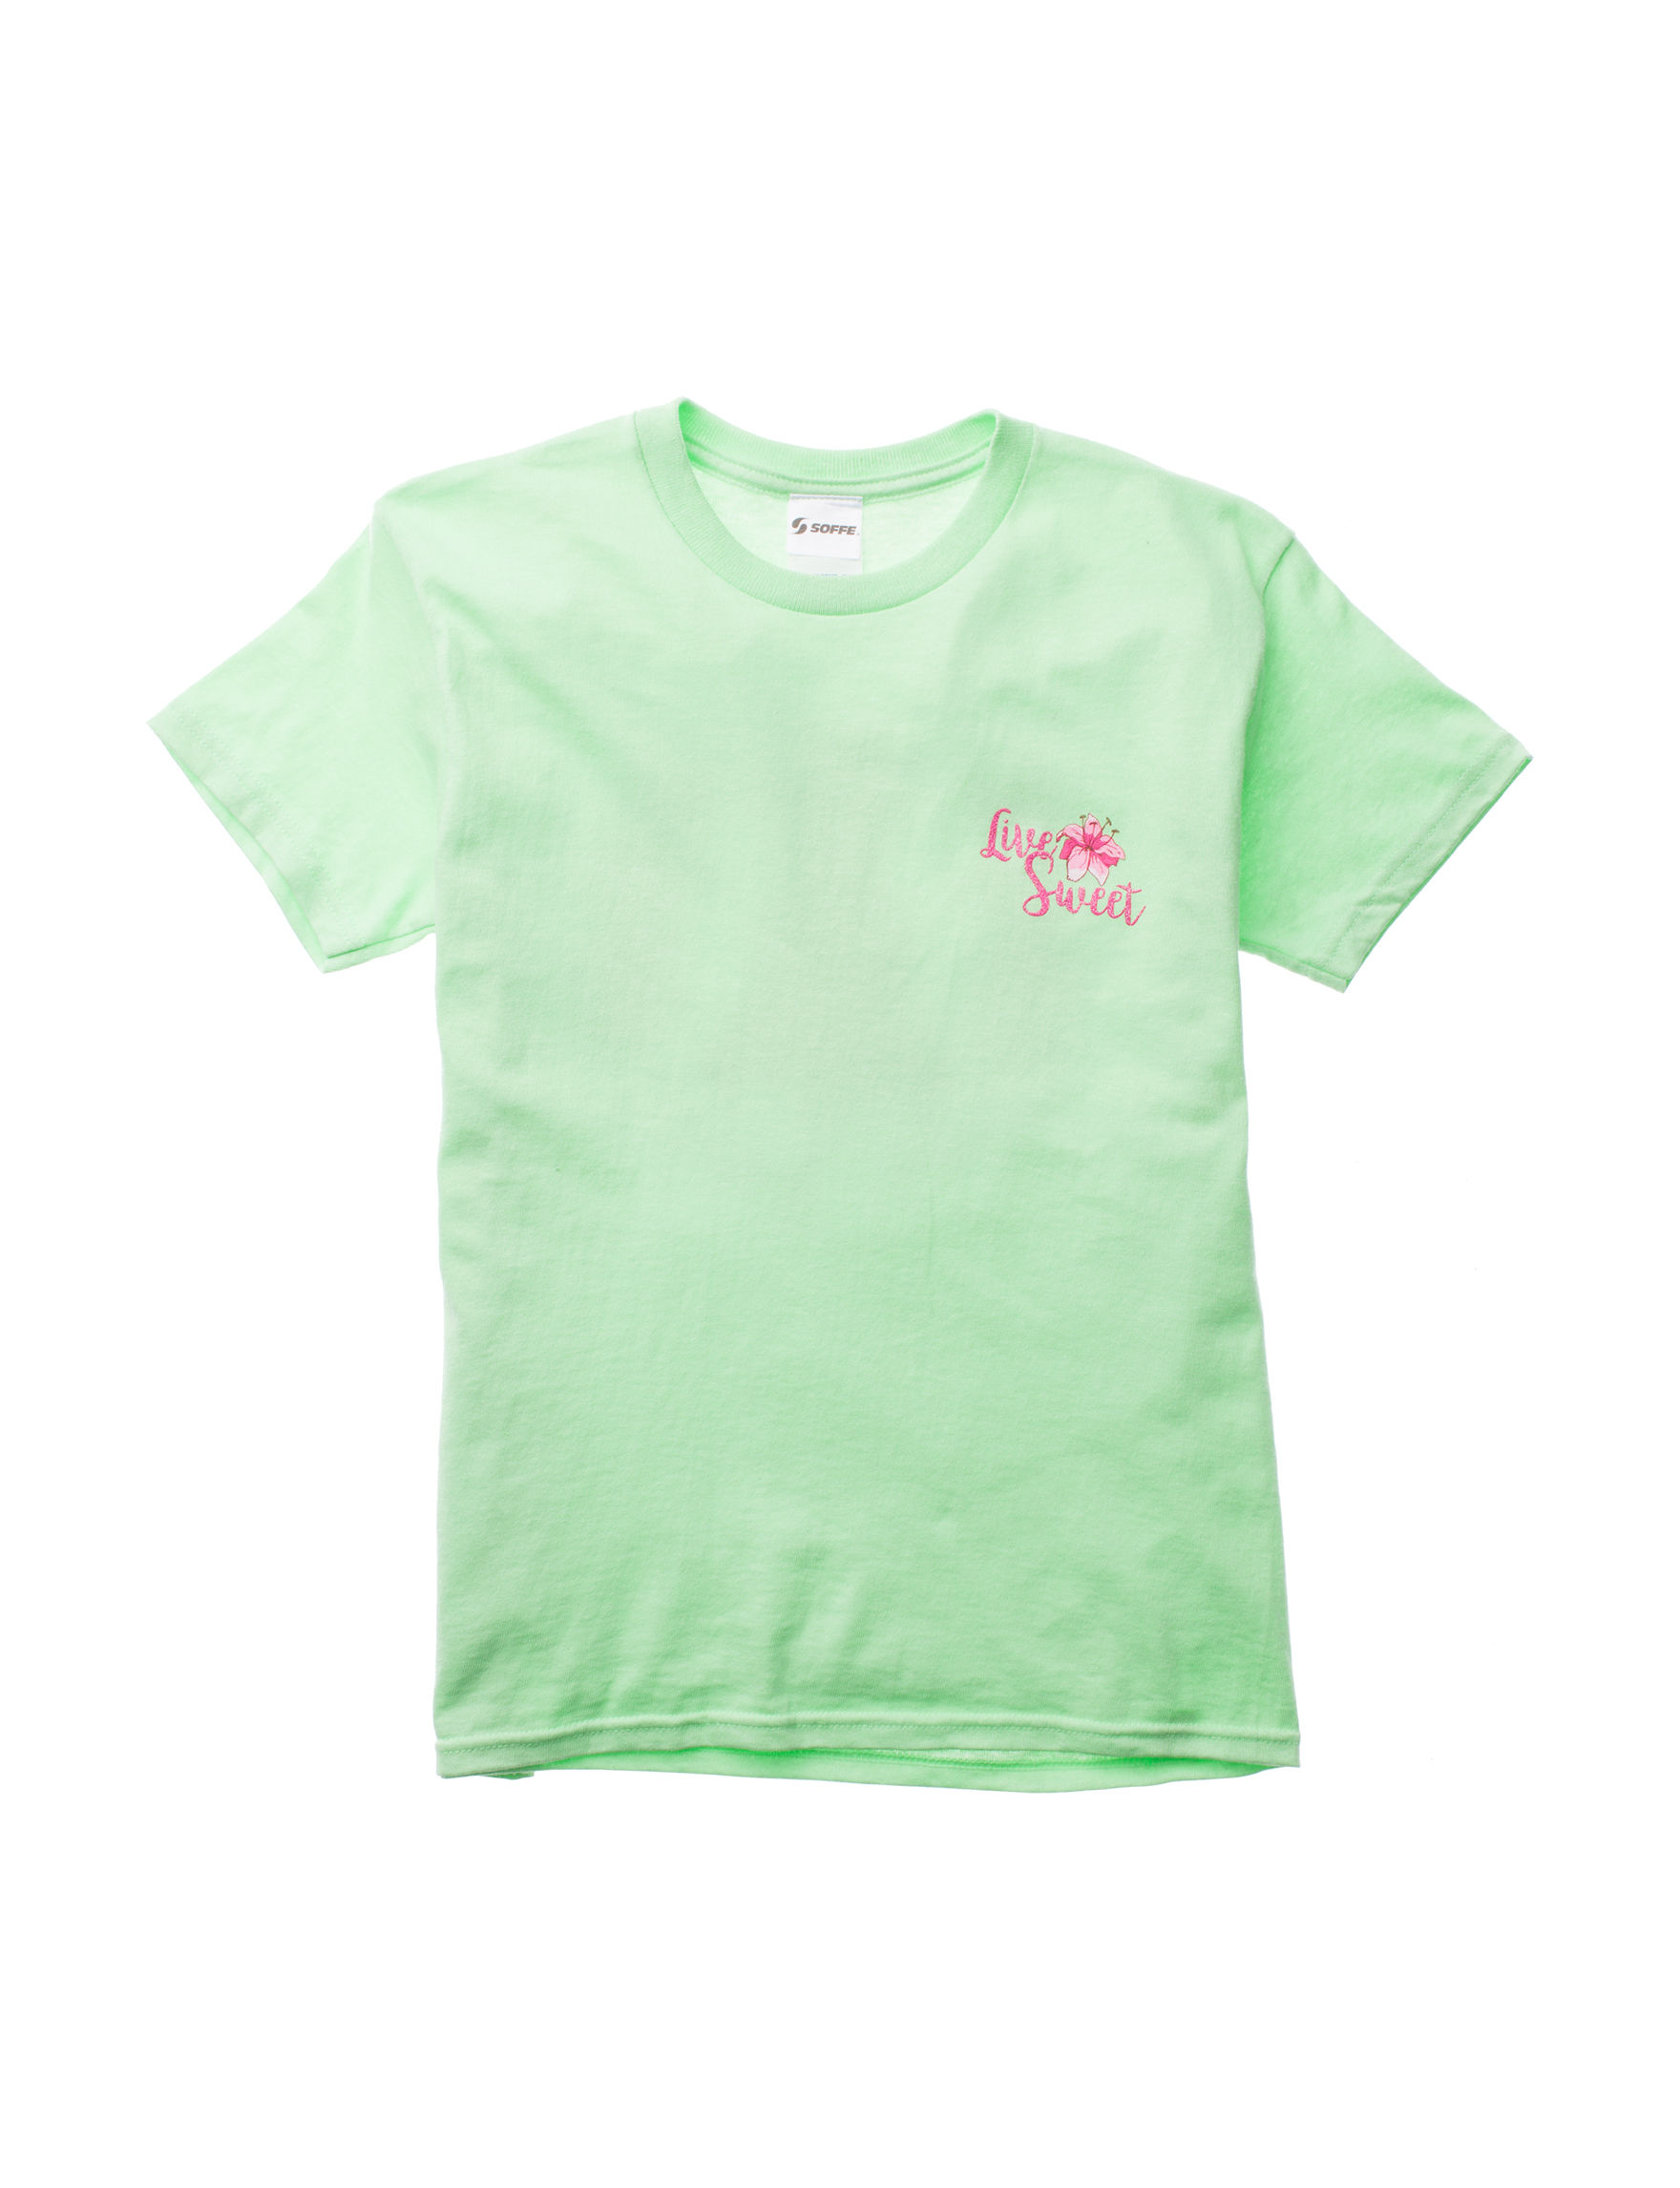 Soffe Neon Green Tees & Tanks